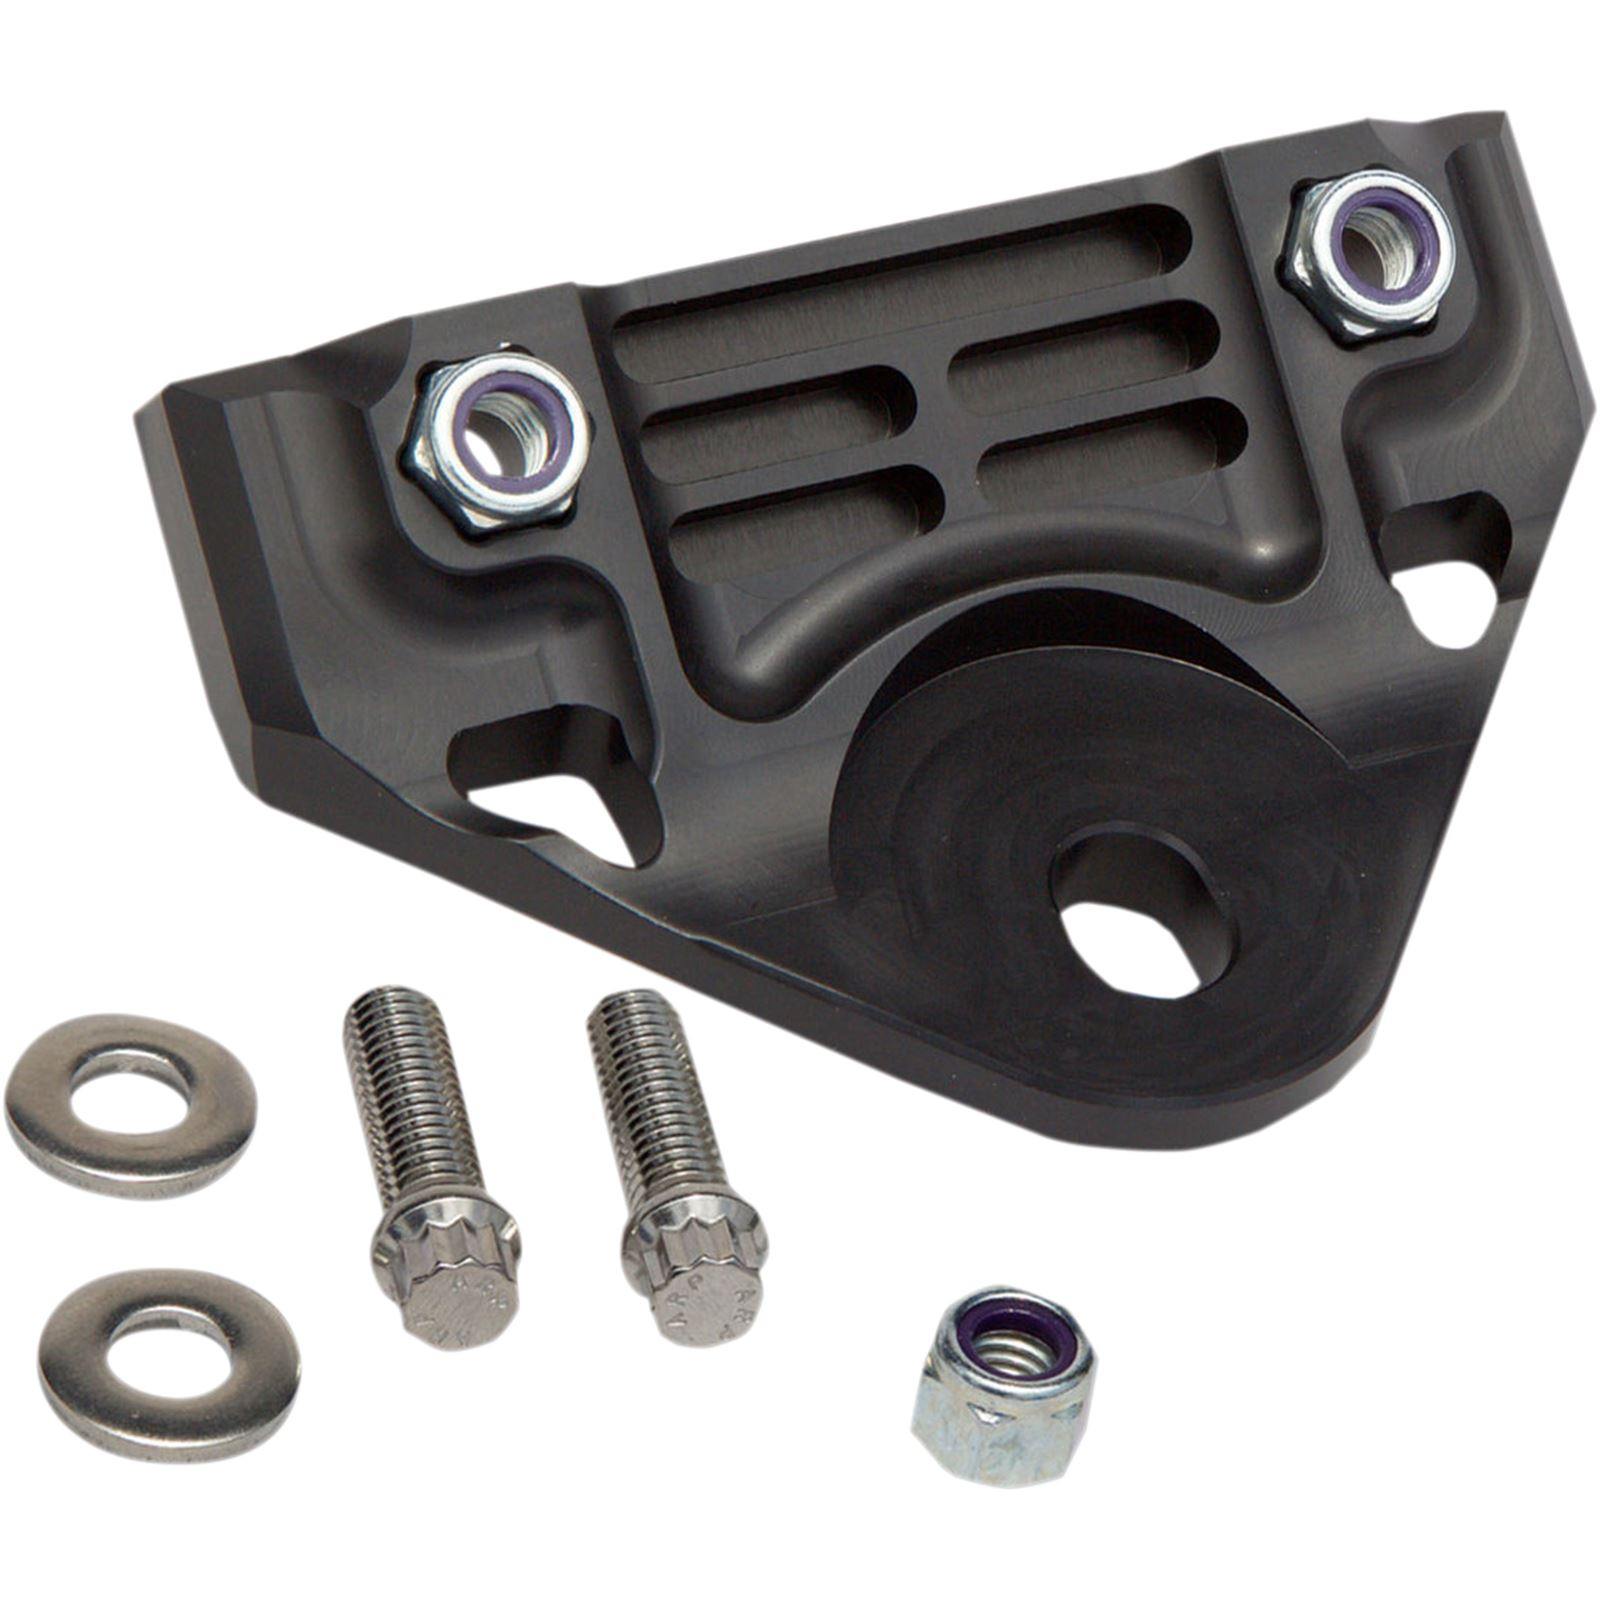 Alloy Art Front Engine Mount - Black - FXR